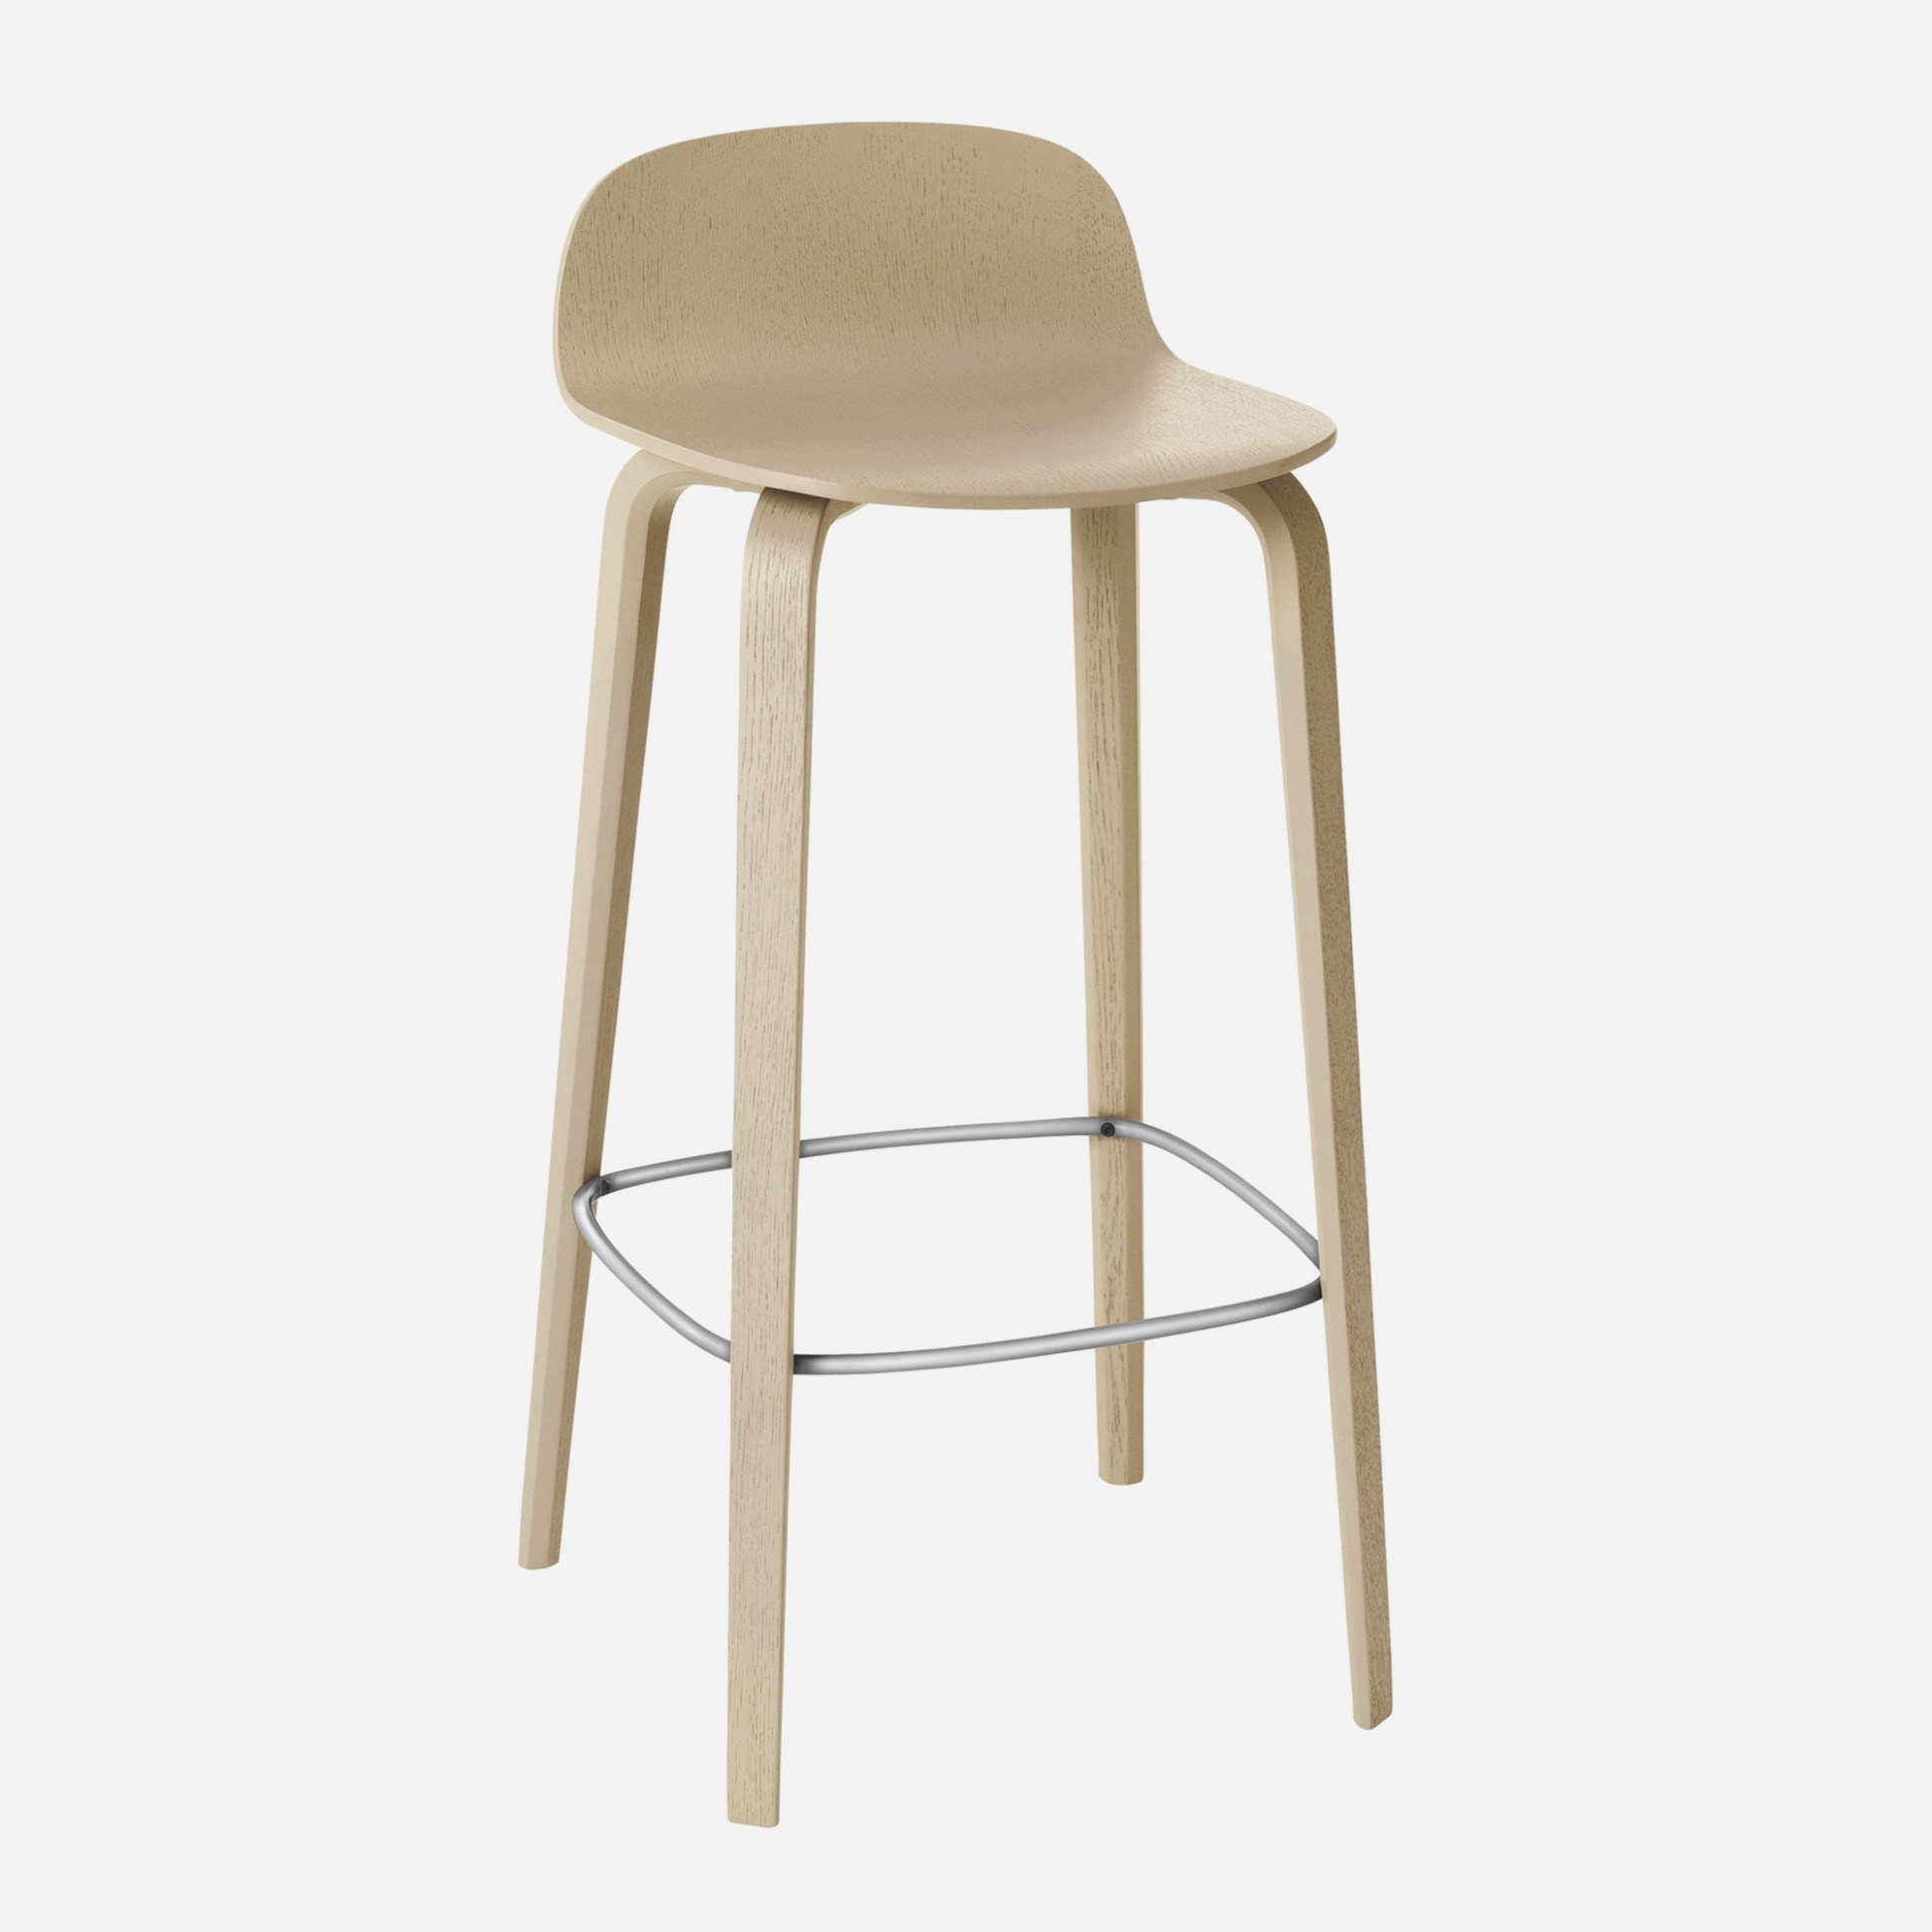 Tabouret De Bar Hauteur 60 Cm.Tabouret Bar Hauteur Assise 60 Cm Boutique Gain De Place Fr